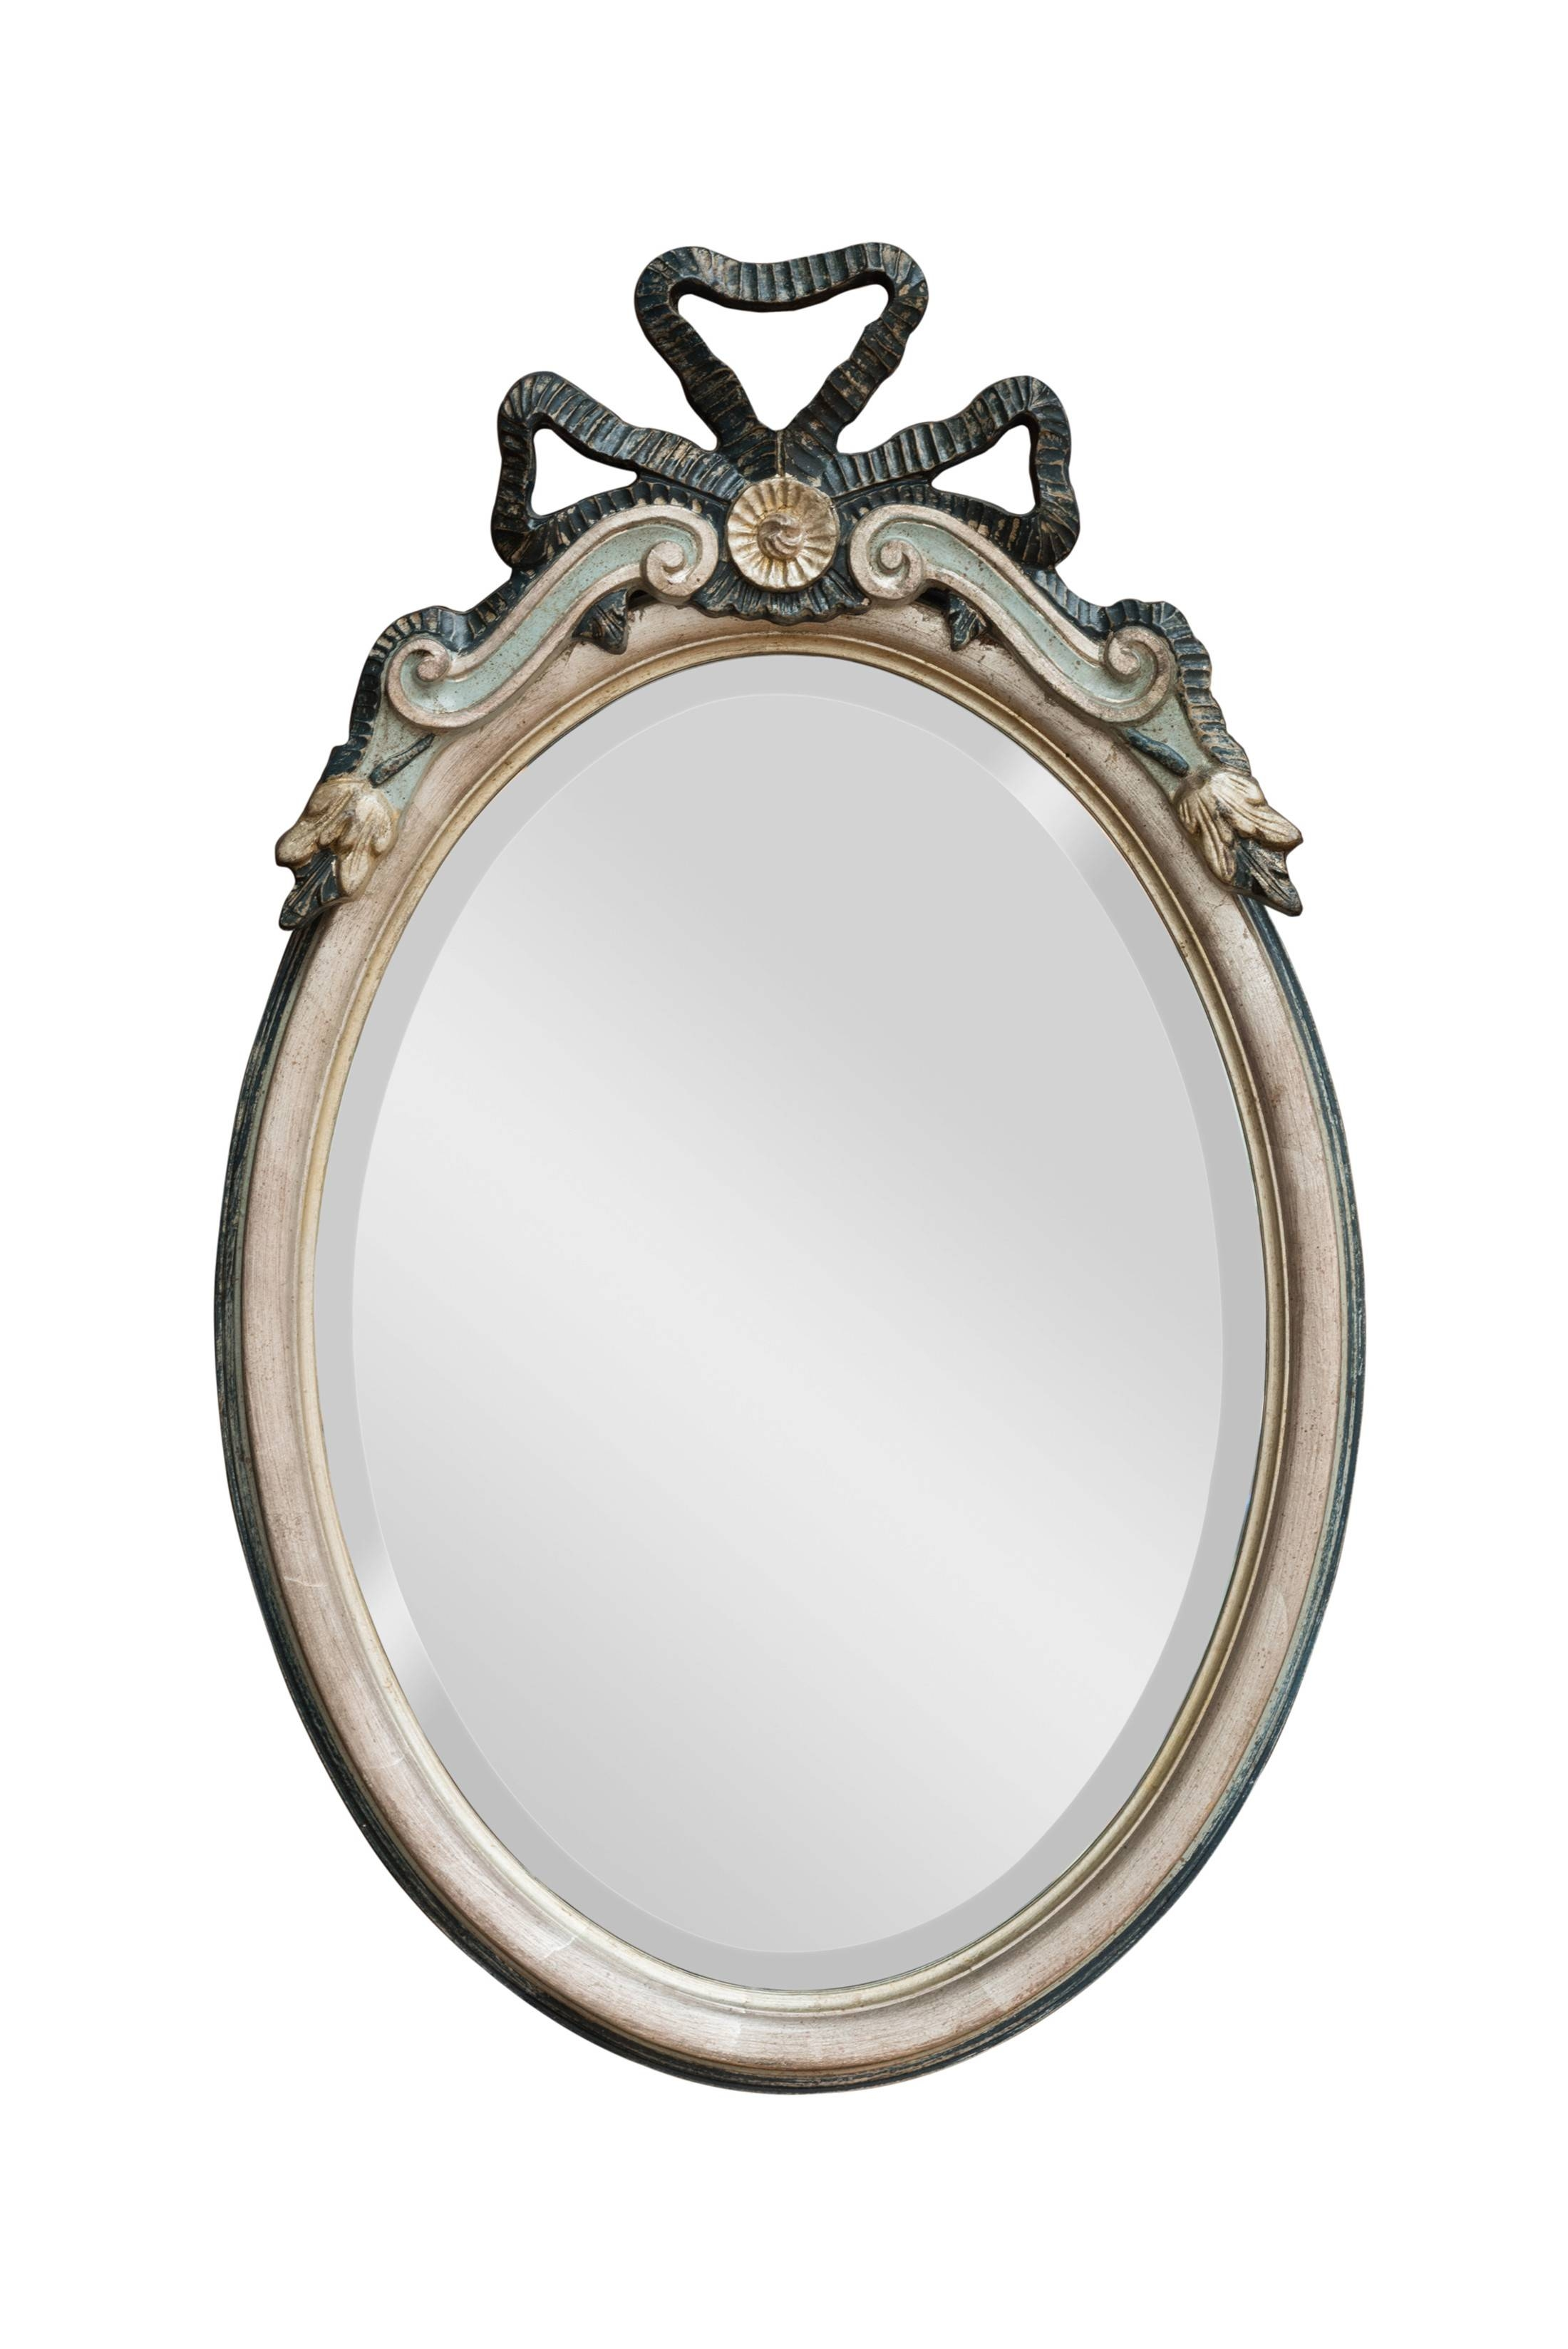 Bow Top Oval Mirror | Hall Mirrors For Sale - Panfili Mirrors regarding Silver Oval Mirrors (Image 6 of 25)